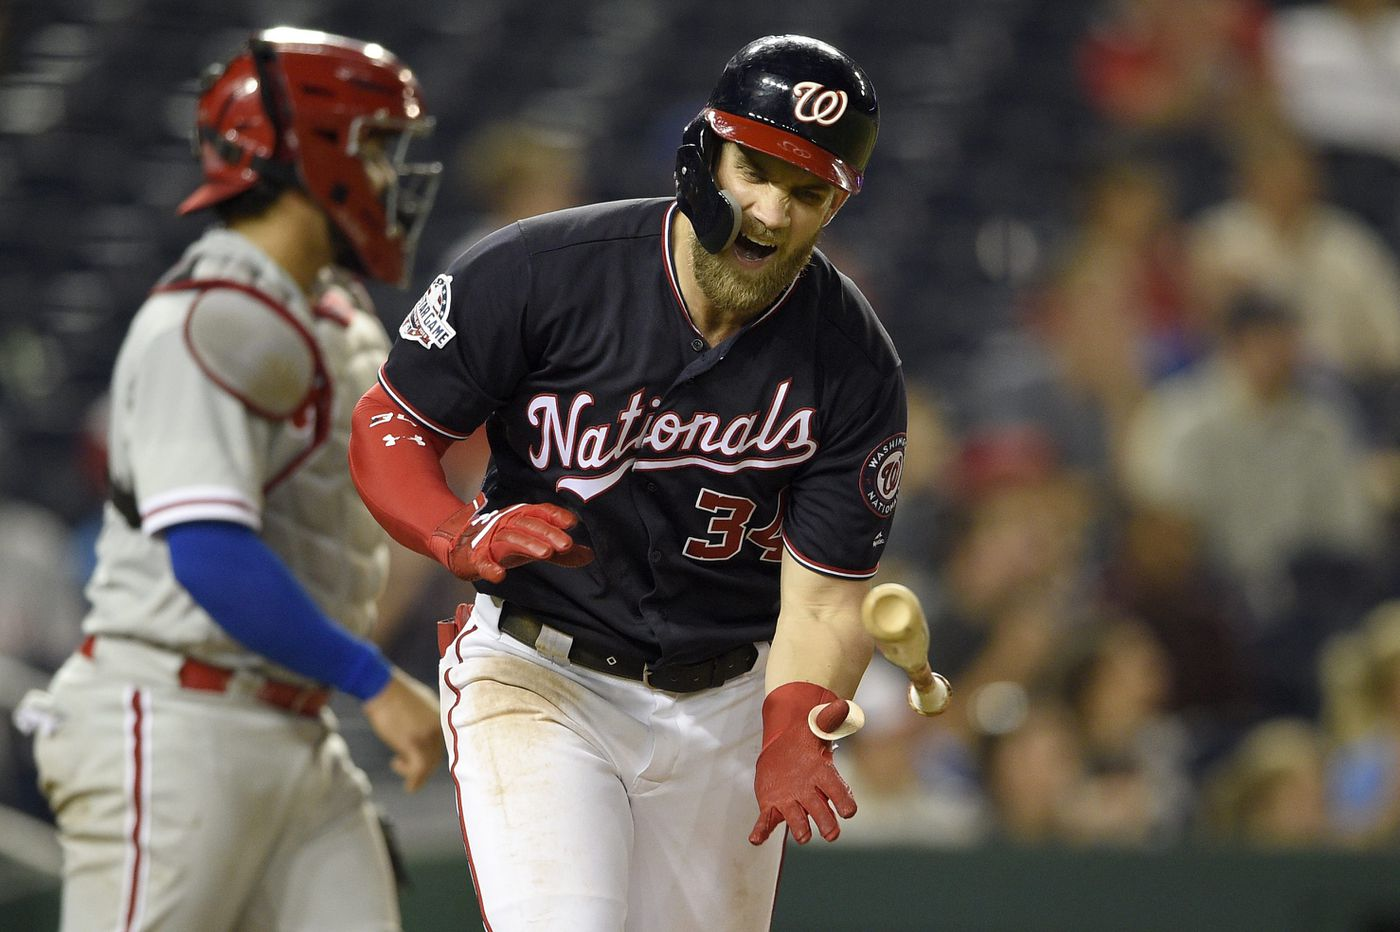 Phillies fall to Nationals, lose third straight to fall another game behind in NL East